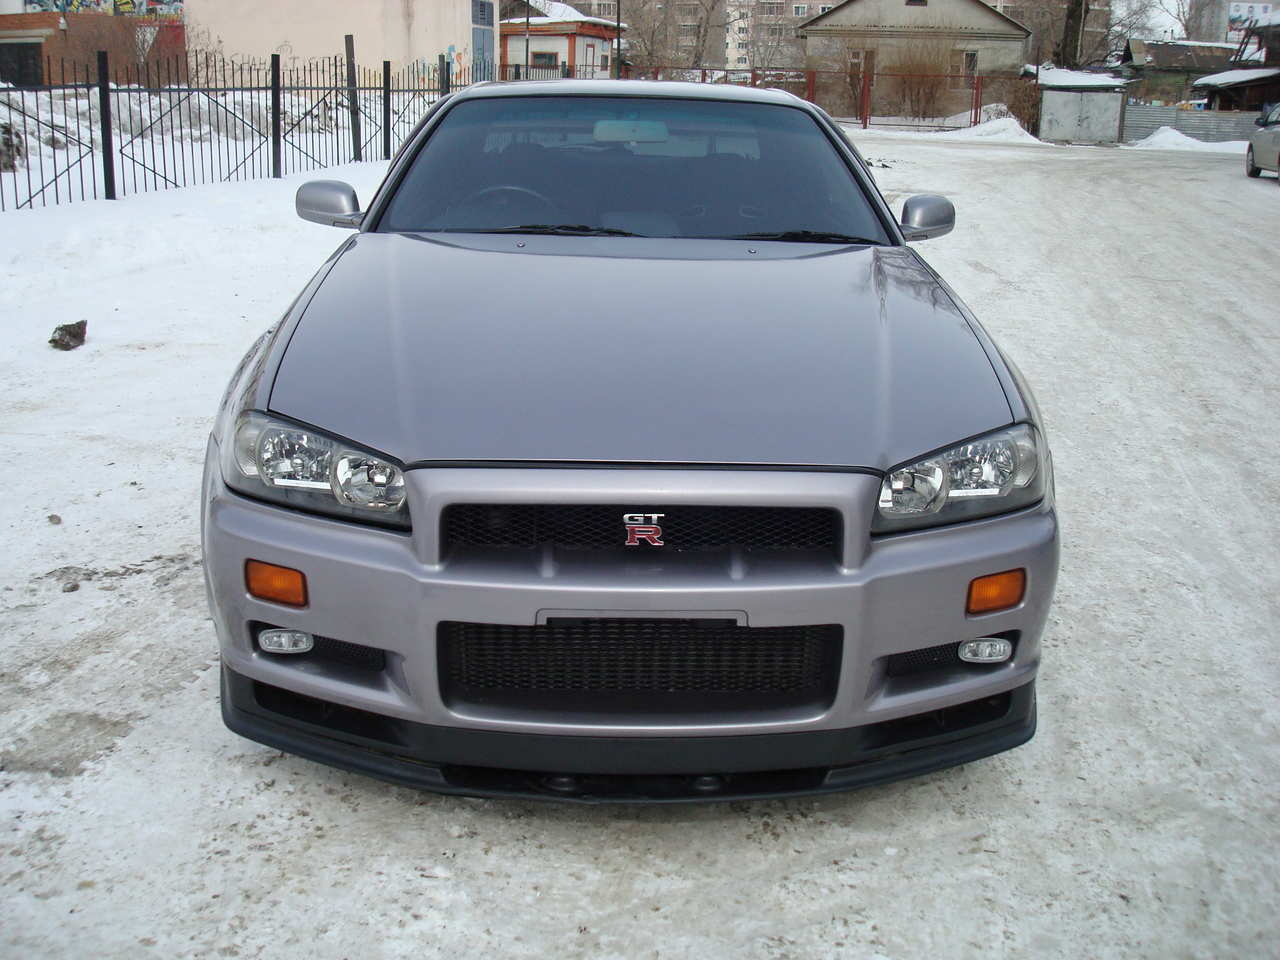 2001 Nissan Skyline 300 GT related infomation,specifications